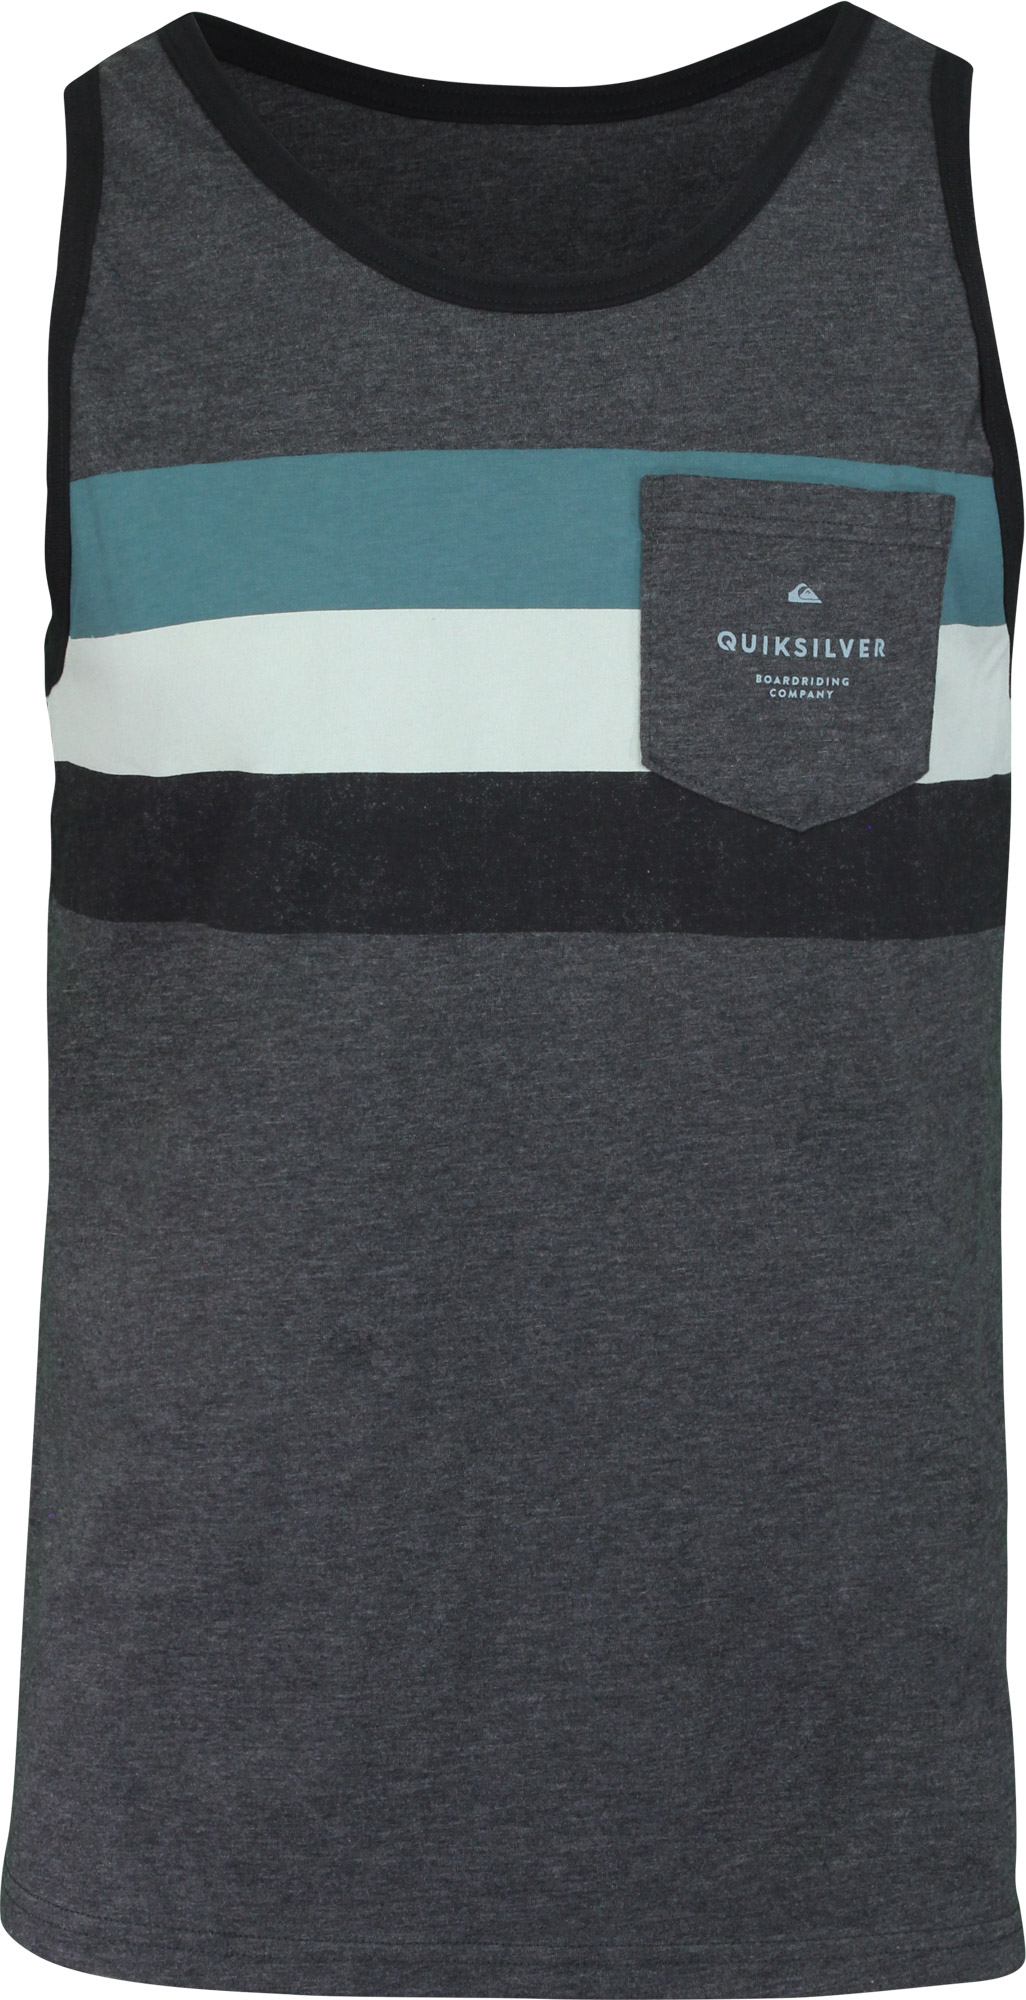 a482b53ebd084 Quiksilver Mens Peaceful Progression Tank Top - Charcoal Heather